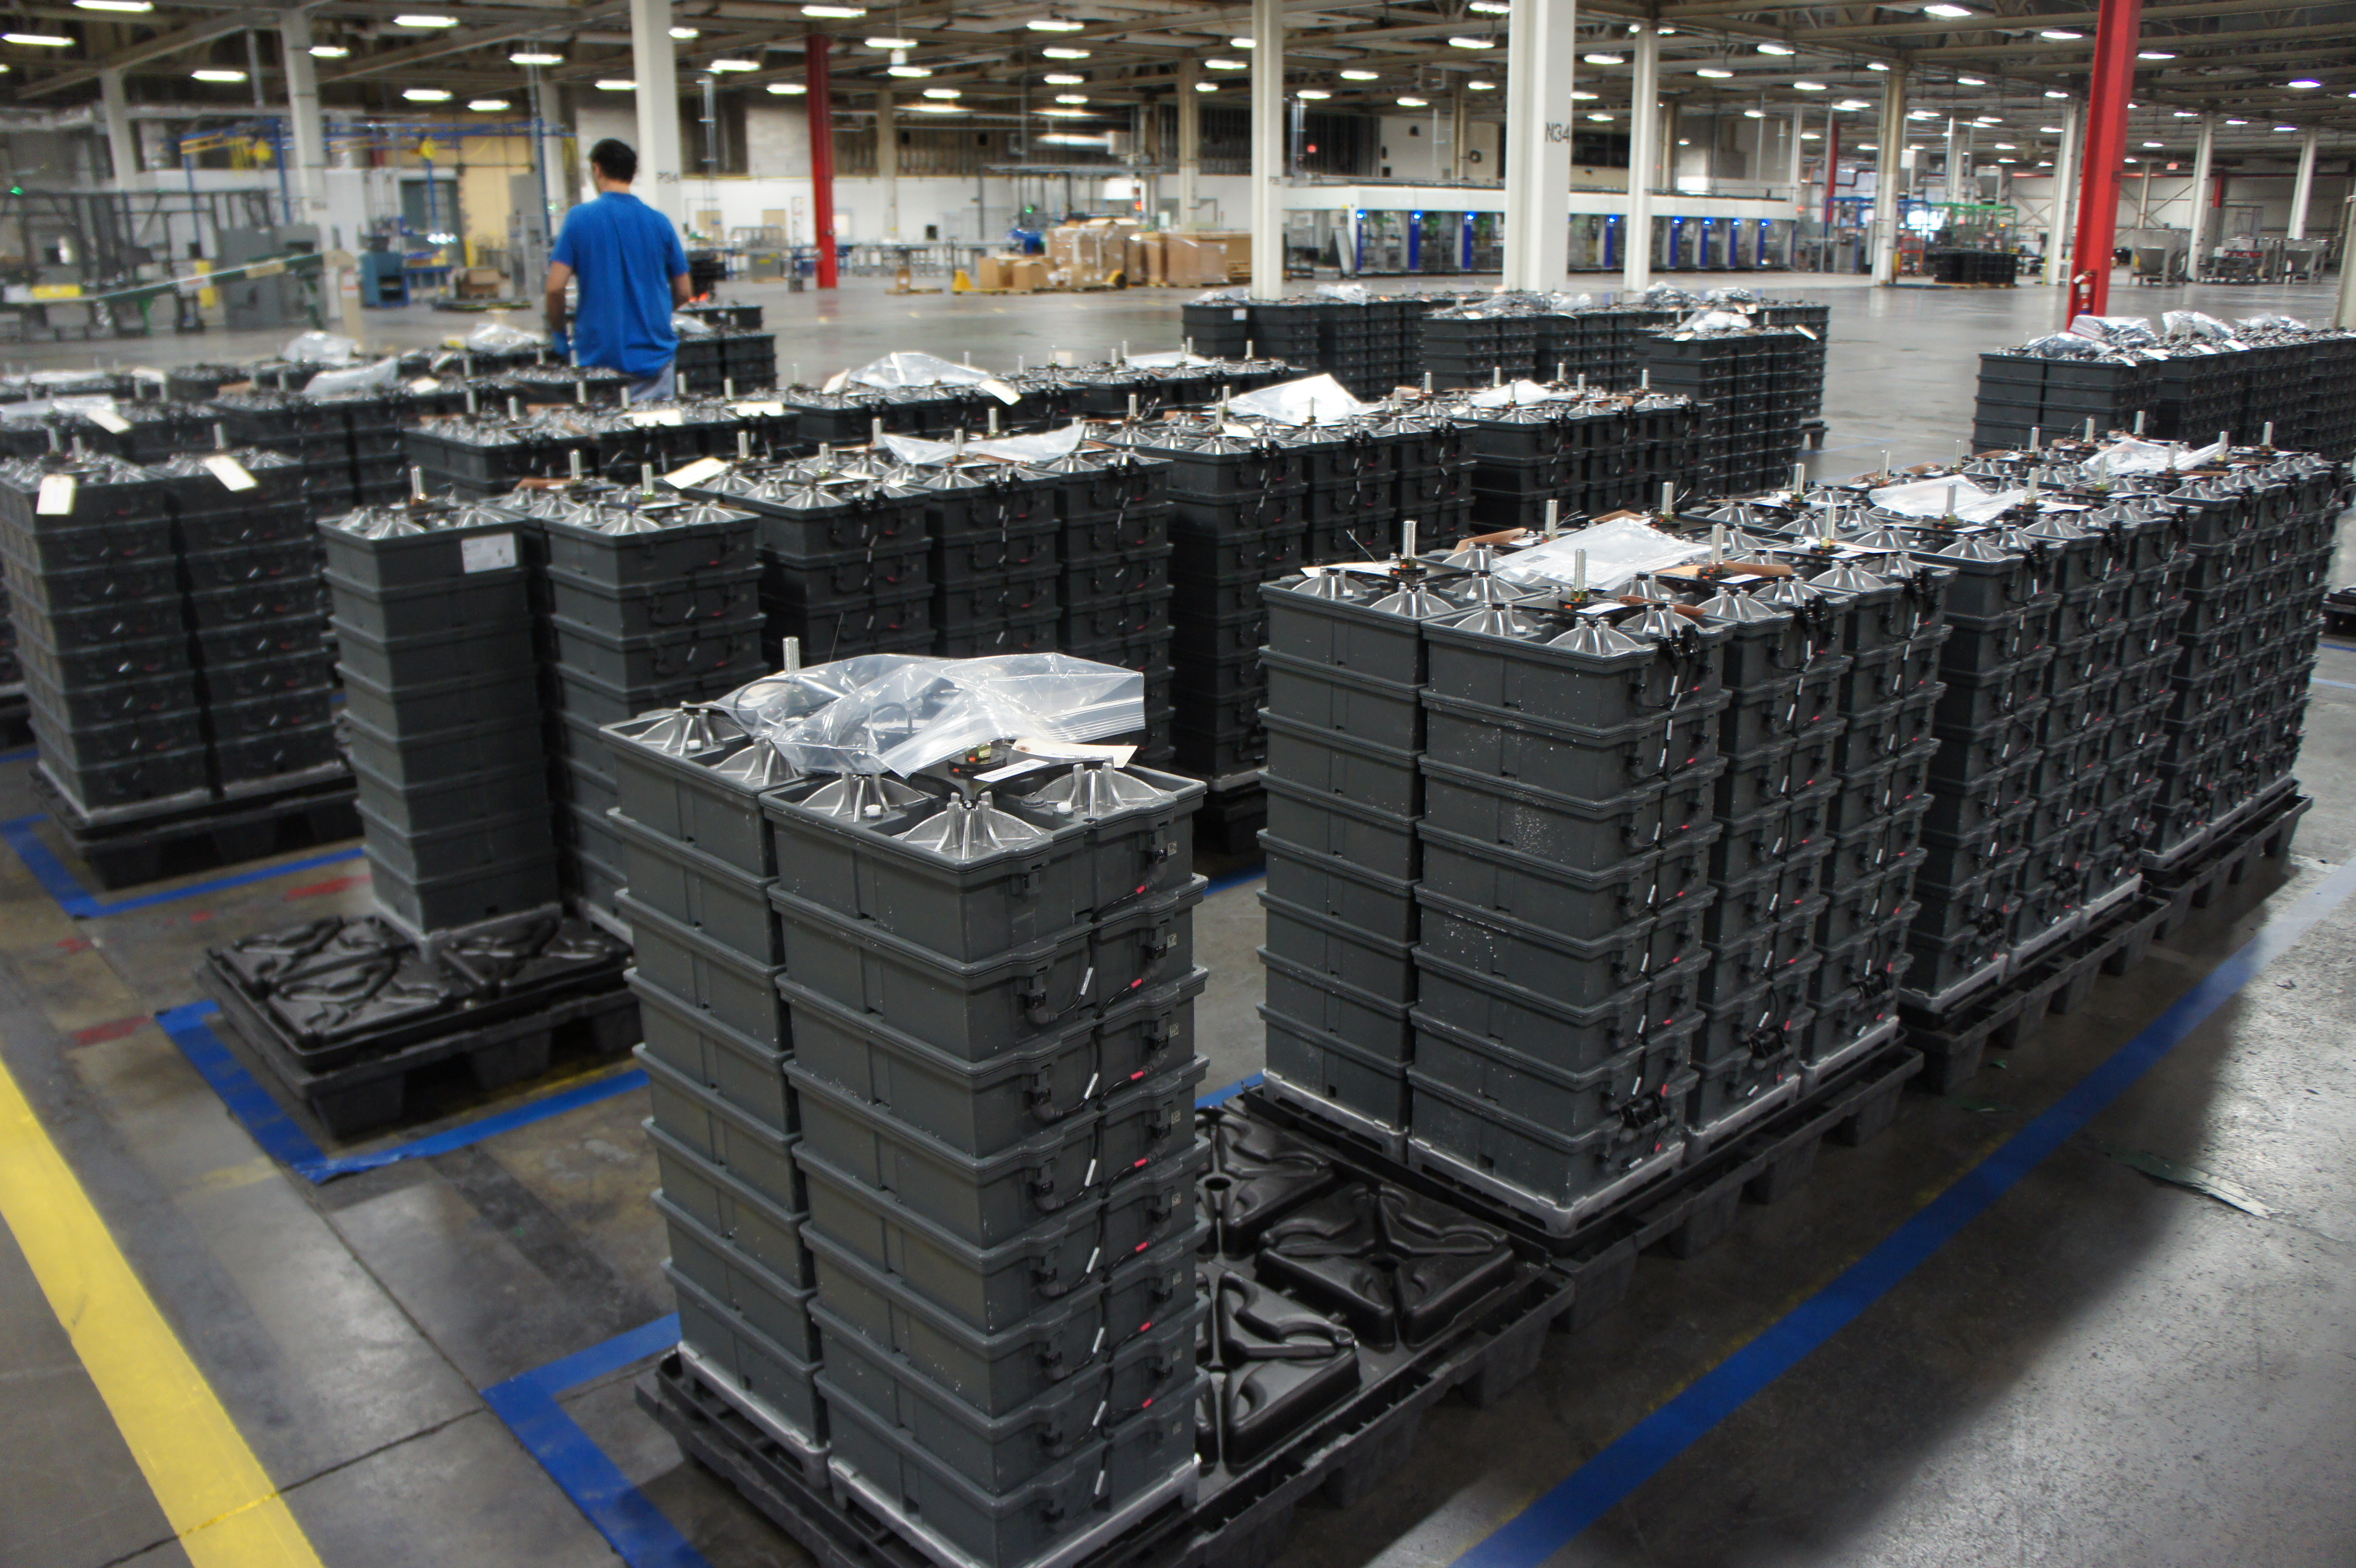 Batteries ready to ship at Aquion Energy's factory. Image courtesy of Katie Fehrenbacher, Gigaom.